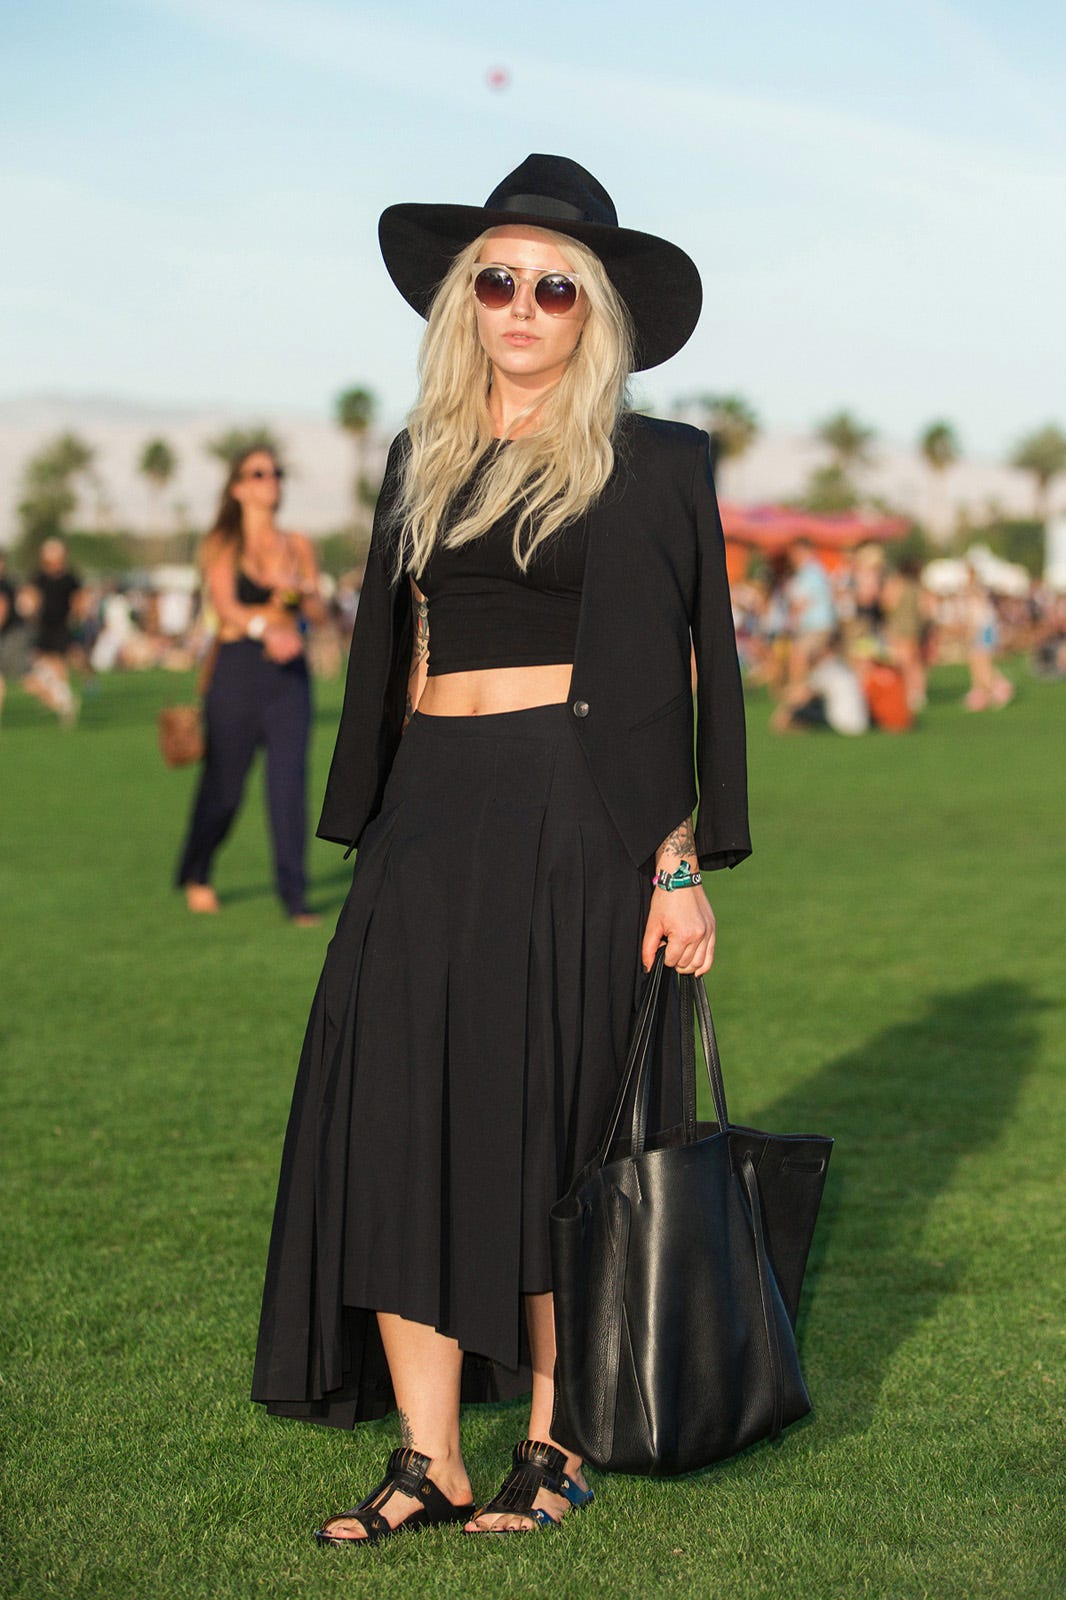 http://www.refinery29.com/2015/04/85205/coachella-2015-street-style-pictures?utm_source=email&utm_medium=editorial&utm_content=everywhere&utm_campaign=150413-coachella-2015-street-style-pictures#slide-11